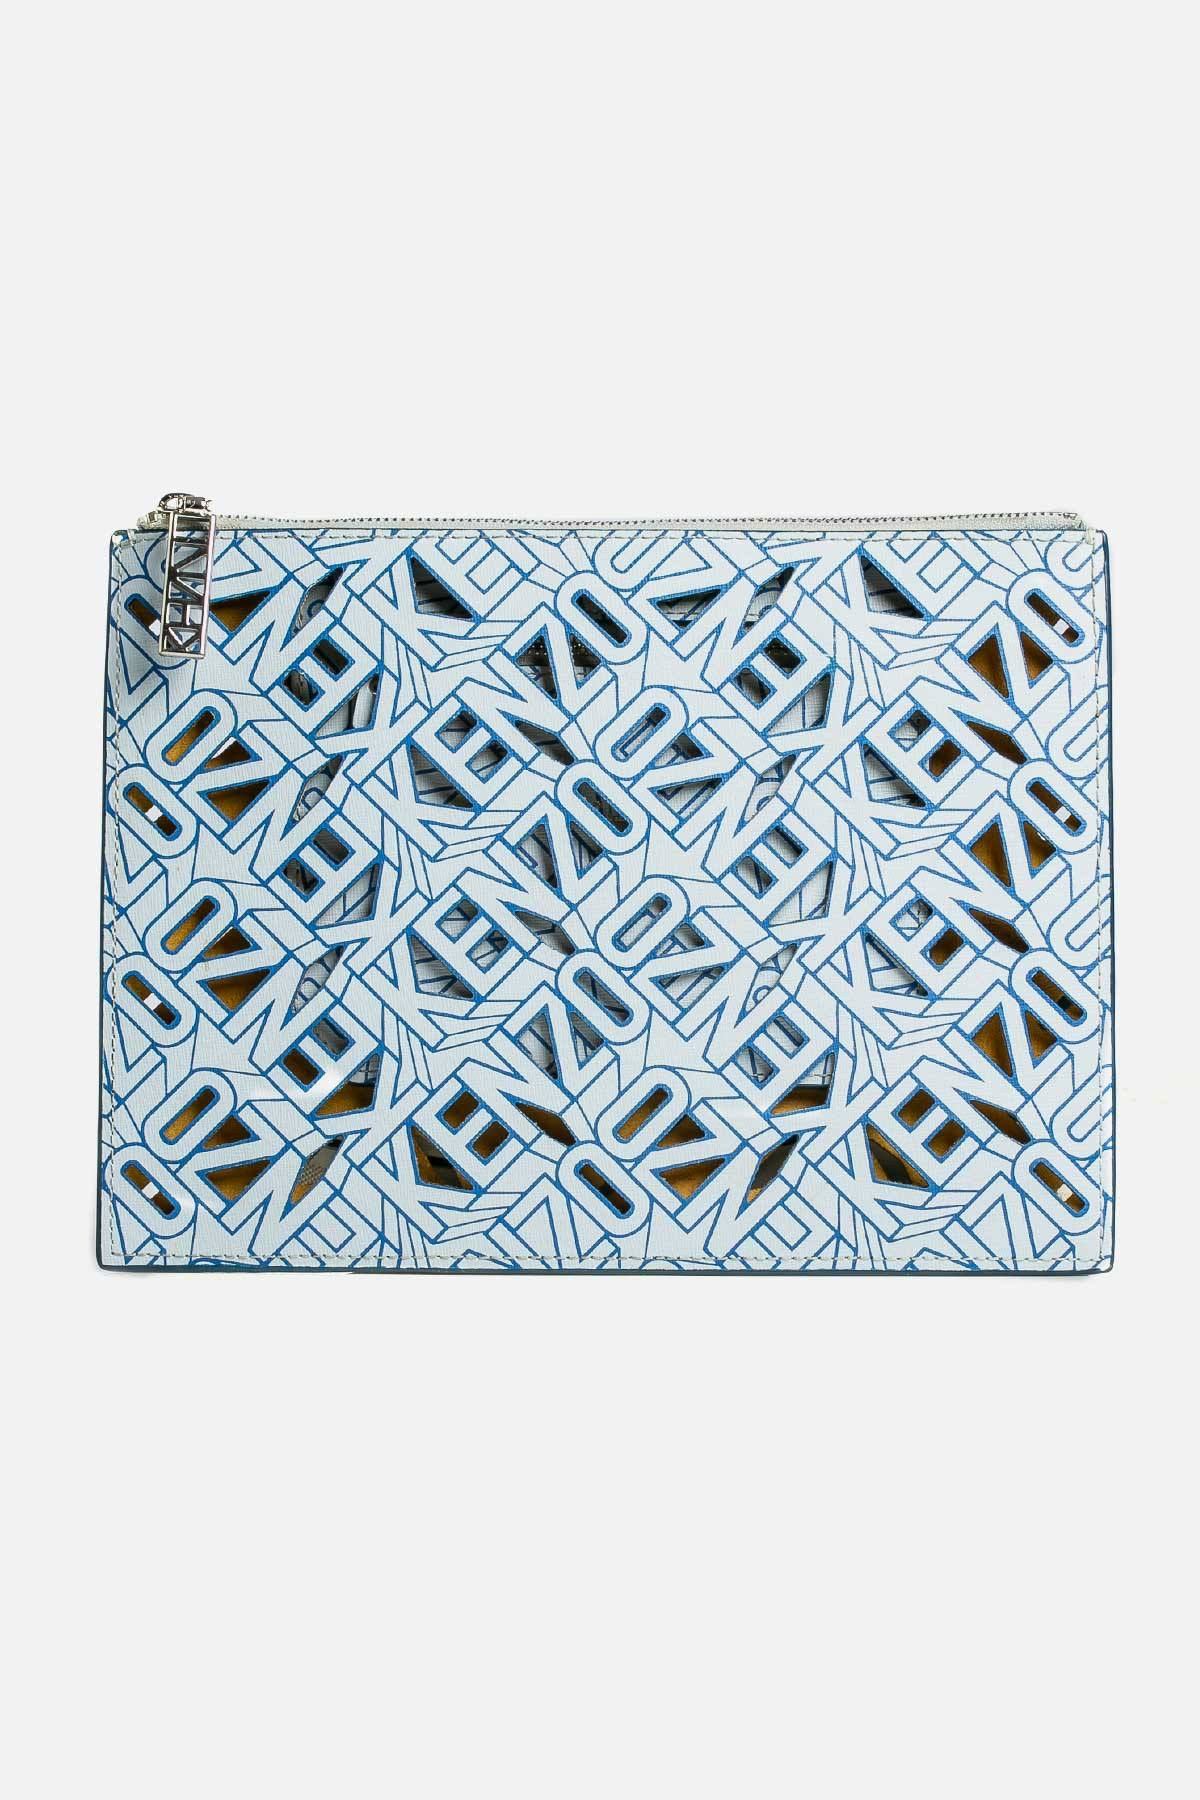 Perforated Leather Clutch